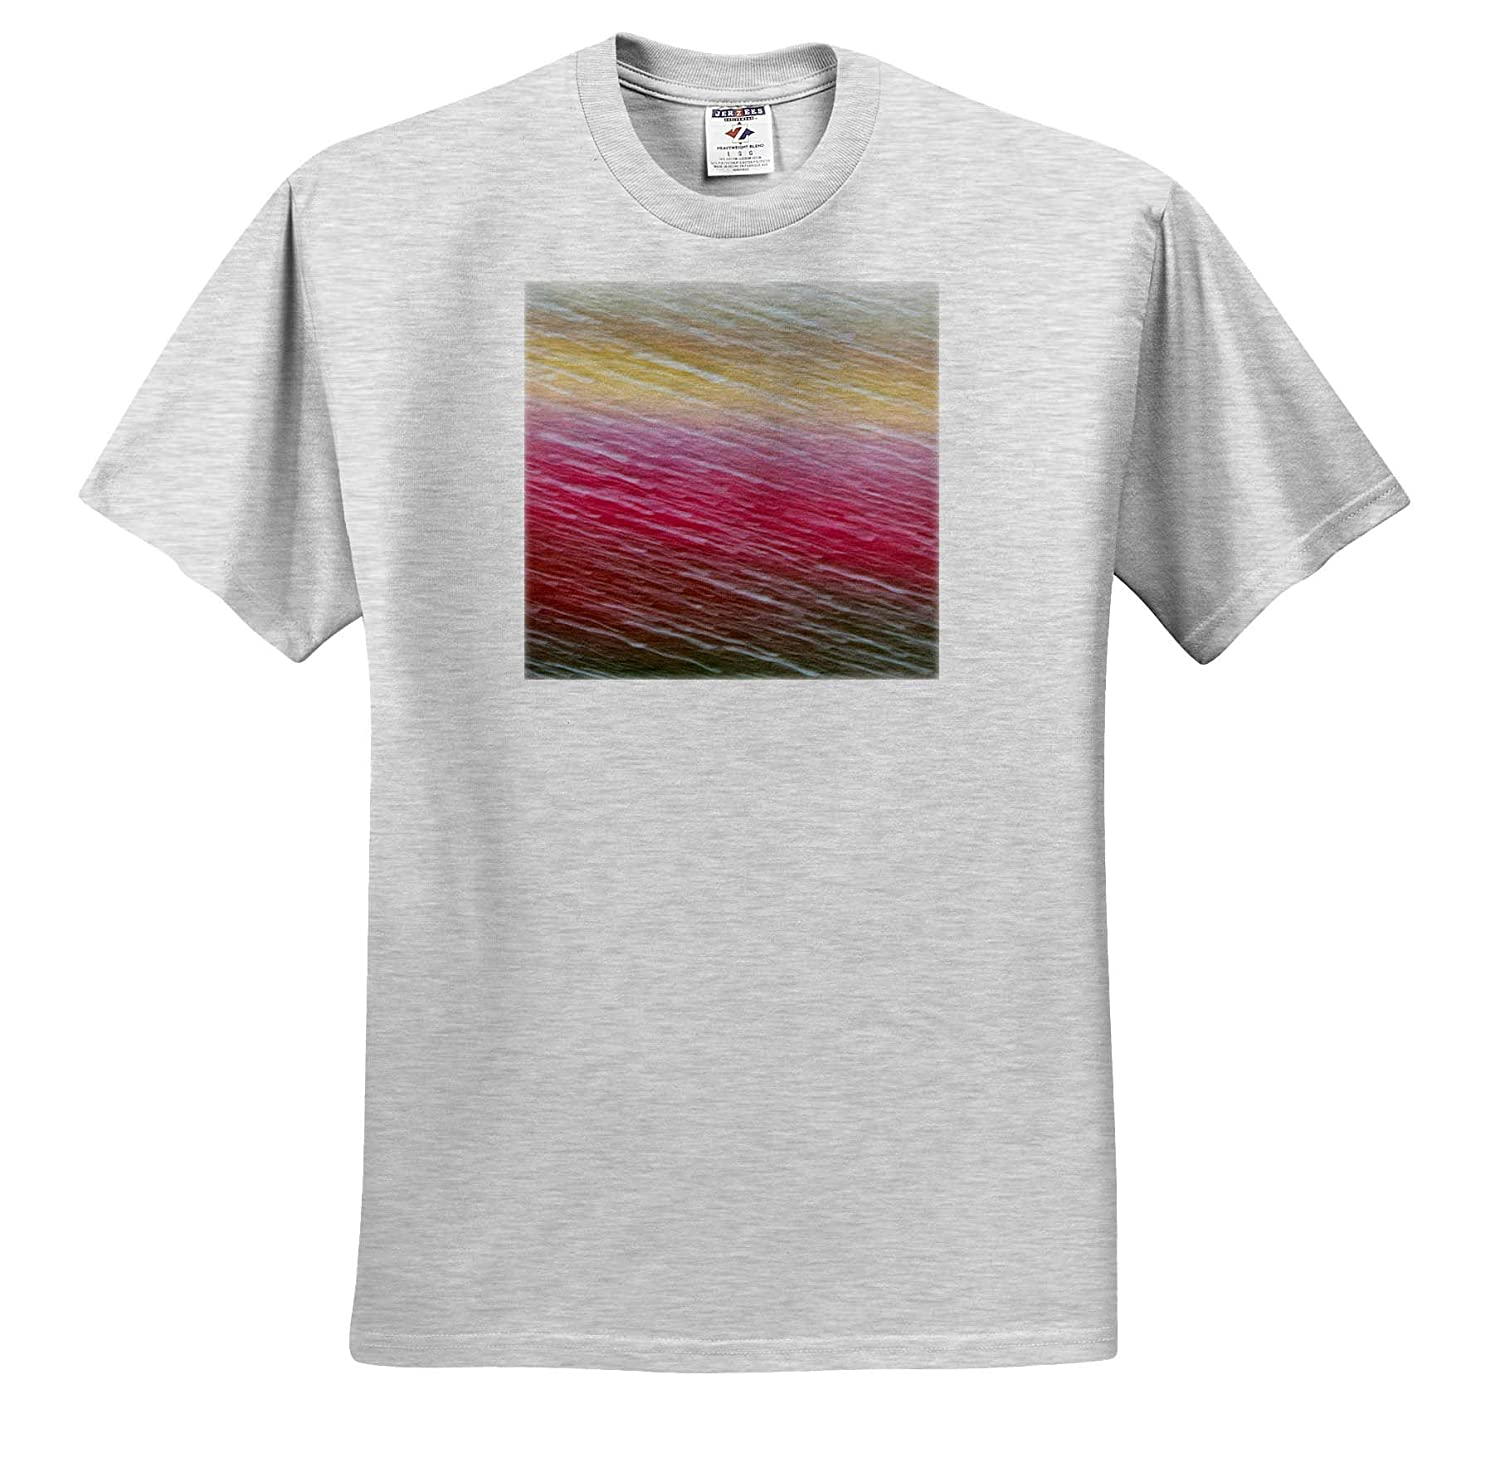 - Adult T-Shirt XL Abstract of Tulips and Rain Drops in Patterns 3dRose Danita Delimont ts/_313784 Abstracts